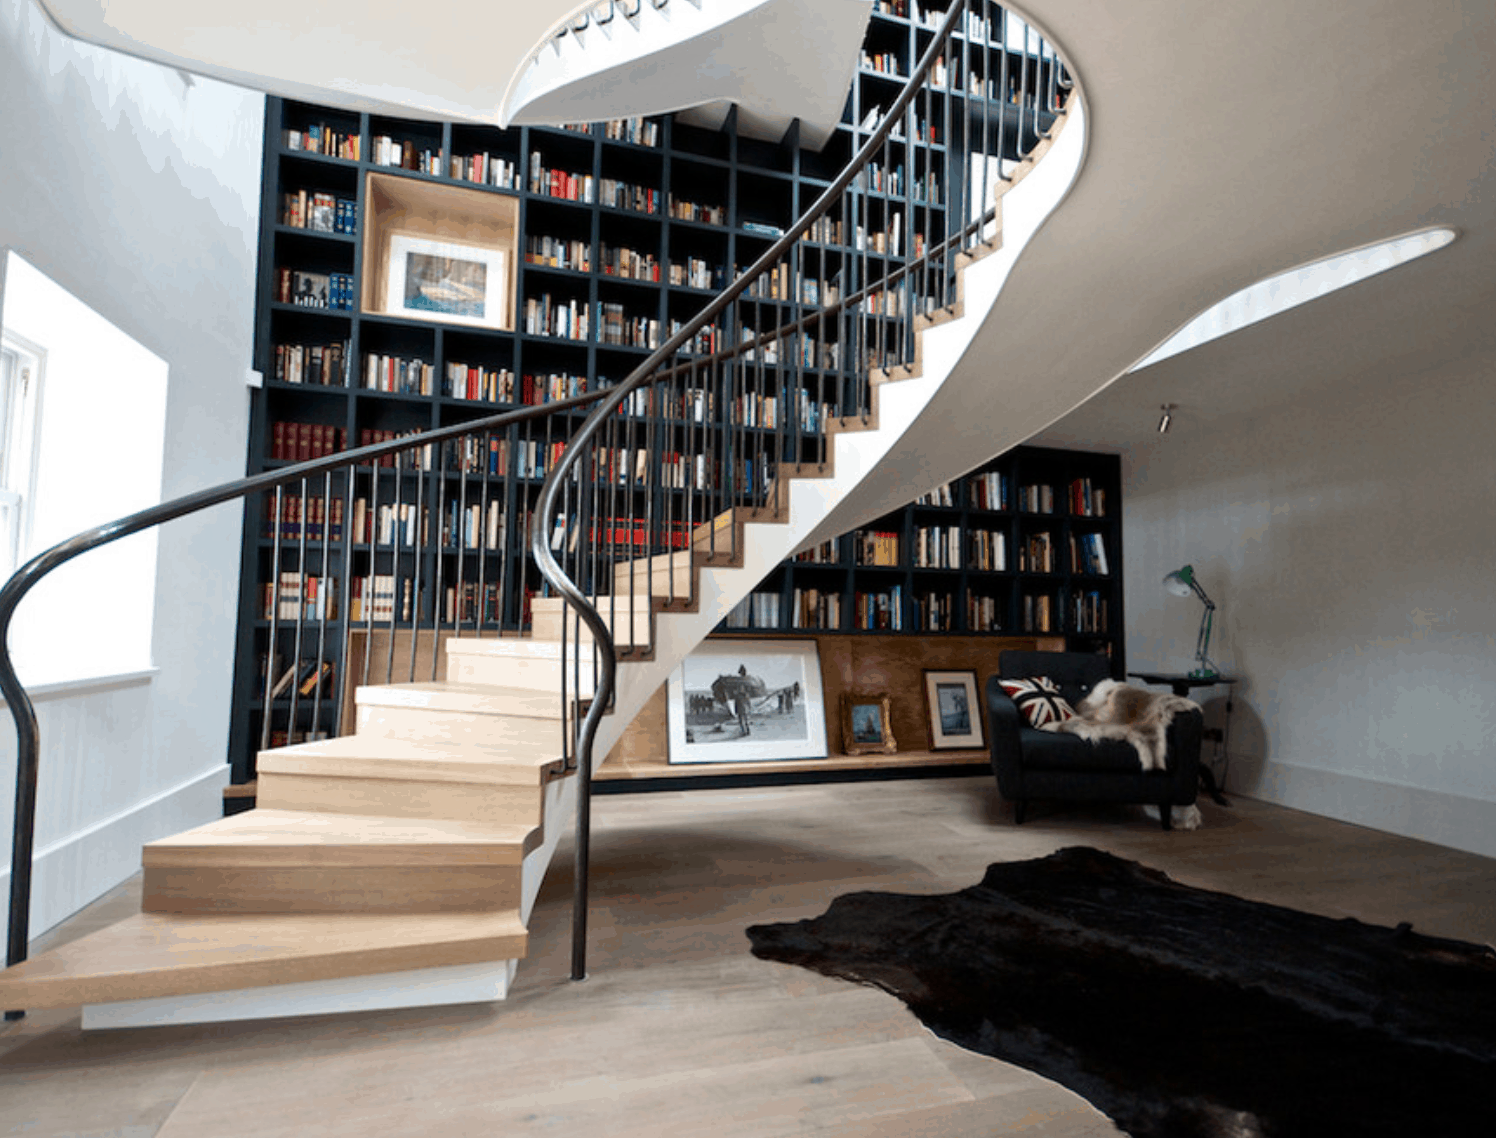 Swirling bookcase stairwell